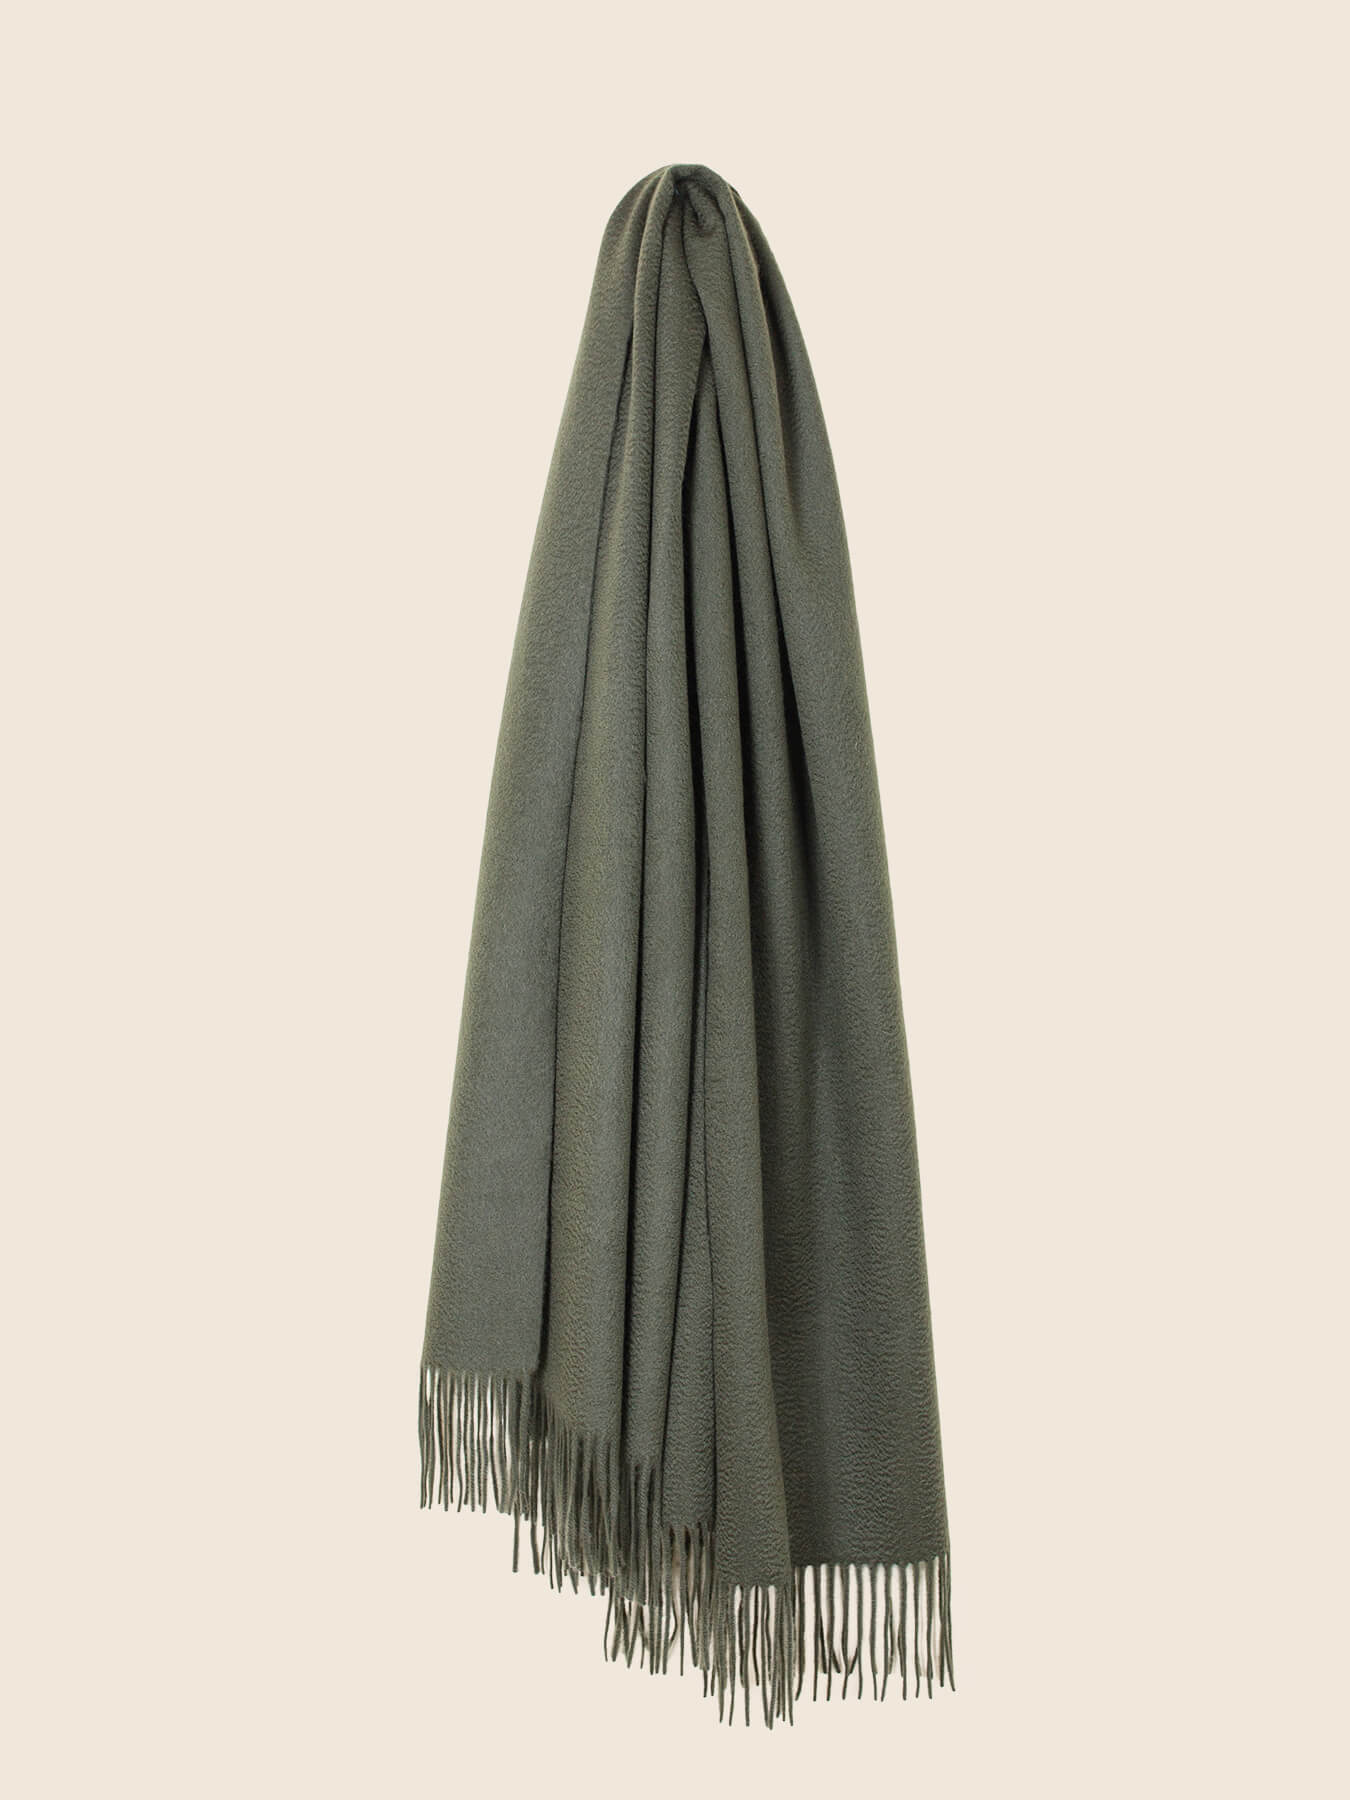 Staple Plain Cashmere Shawl Moss Green 1